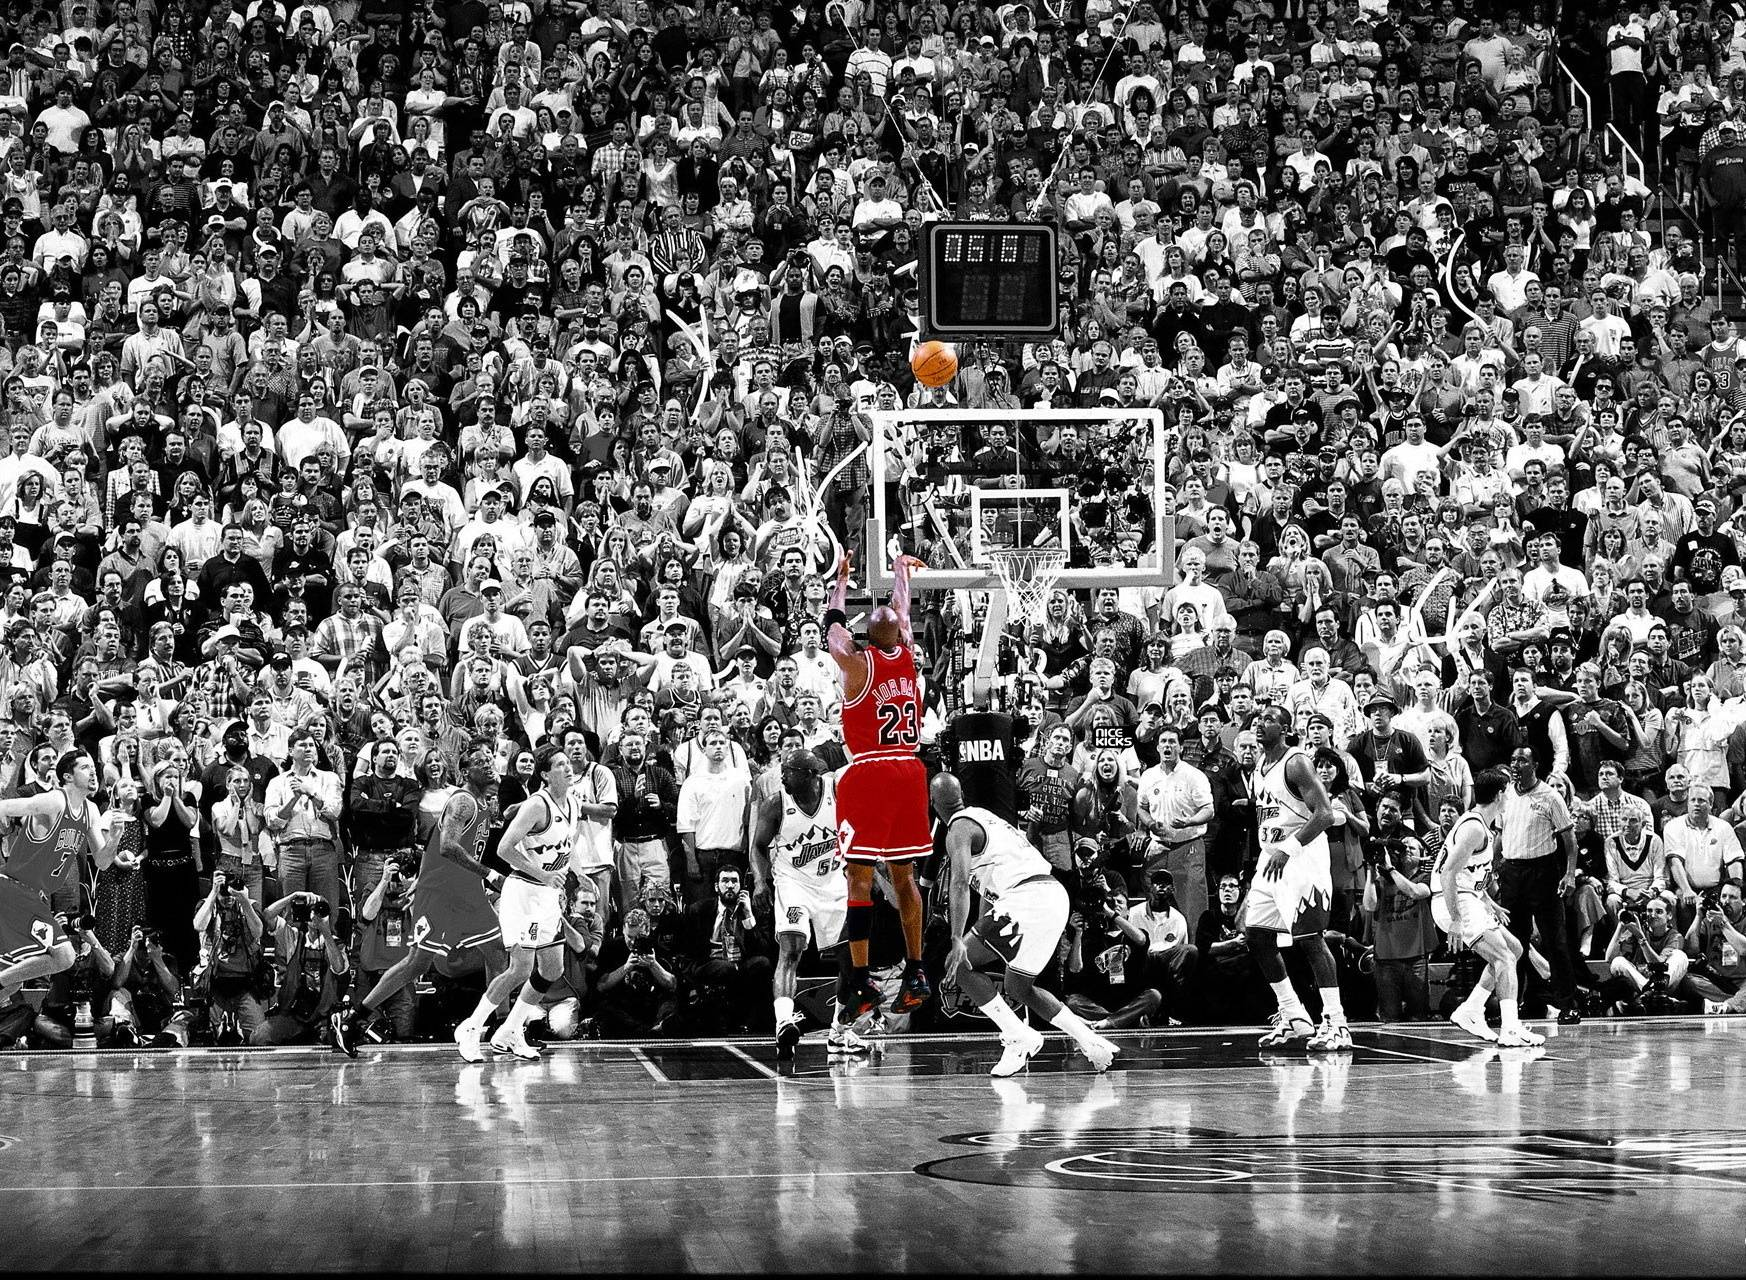 Wallpaper iphone jordan - Free Michael Jordan Desktop Image Chicago Bulls Wallpapers